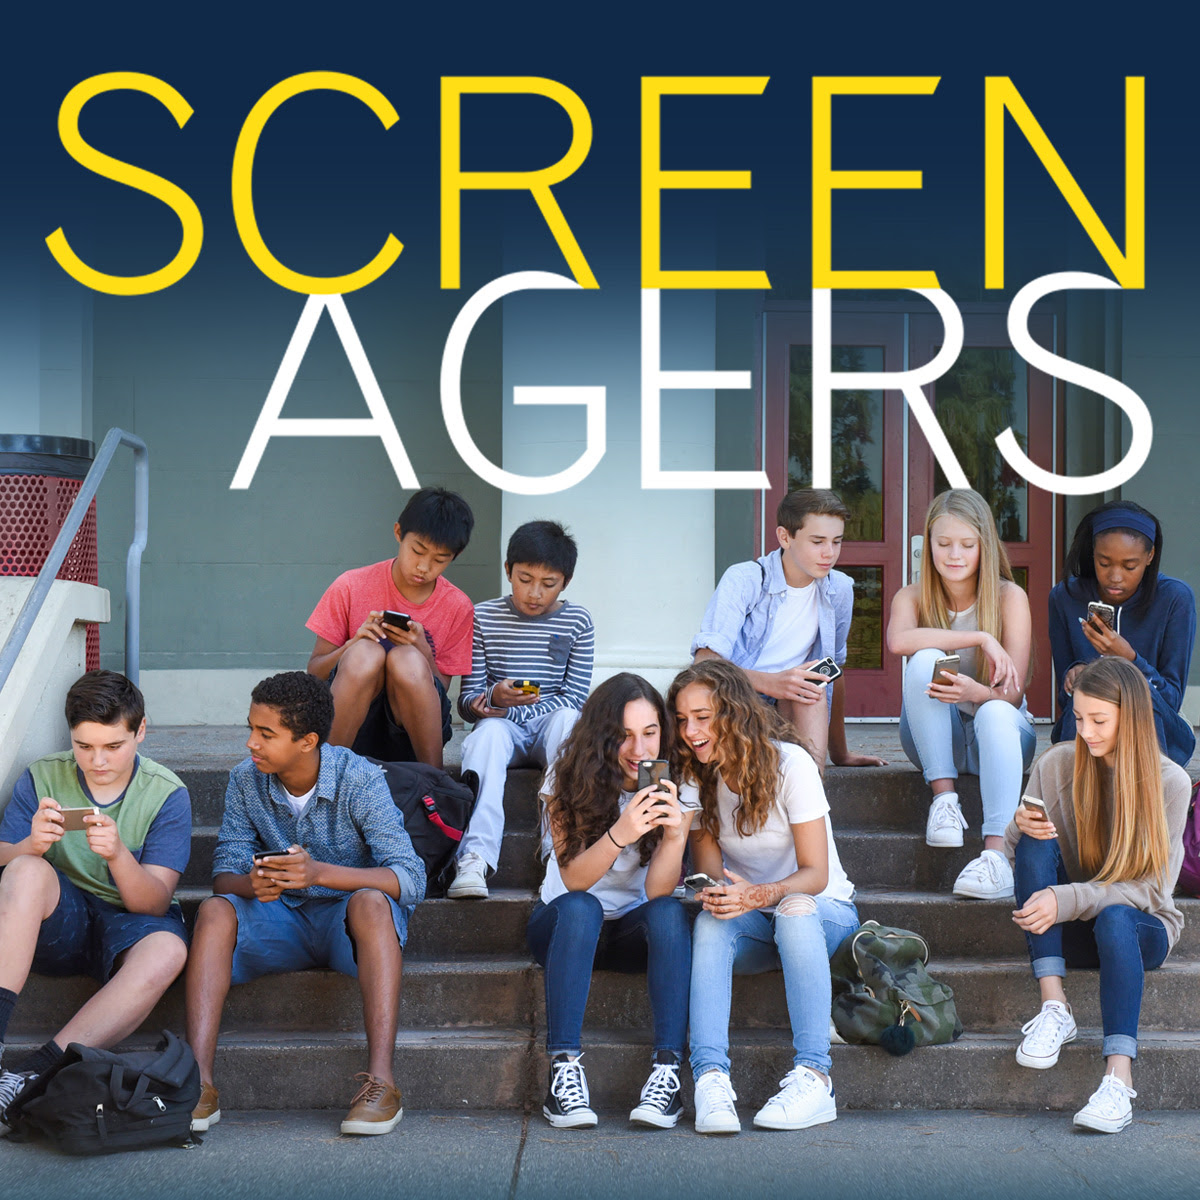 Screenagers Film Presented By St. John's Lutheran School